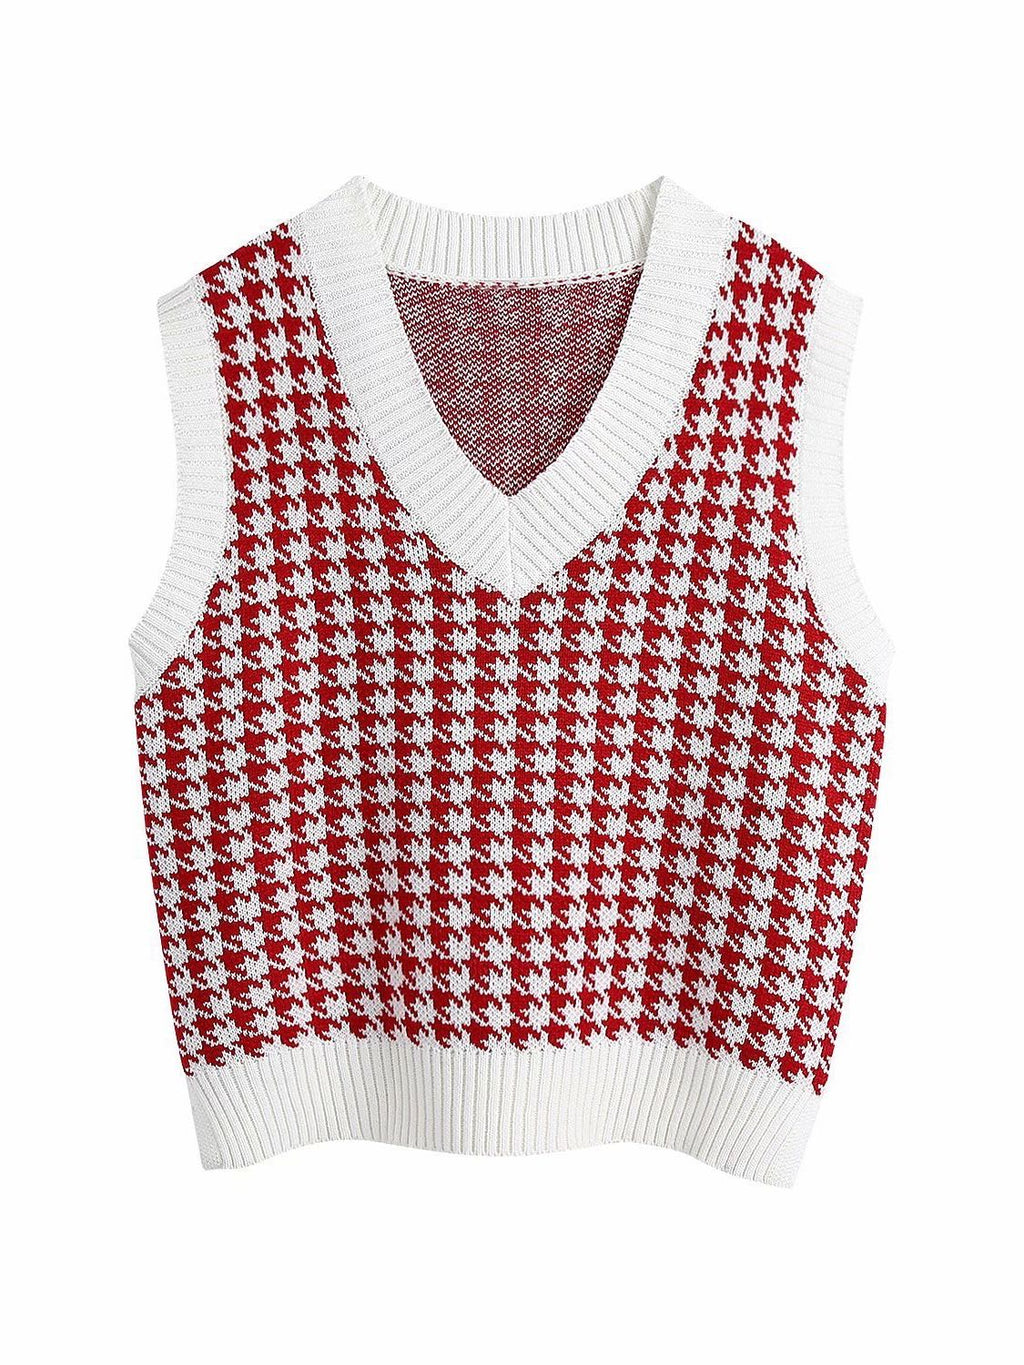 Age Reduction V-Neck Sleeveless Twist Knit Waistcoat Women - INS | Online Fashion Free Shipping Clothing, Dresses, Tops, Shoes